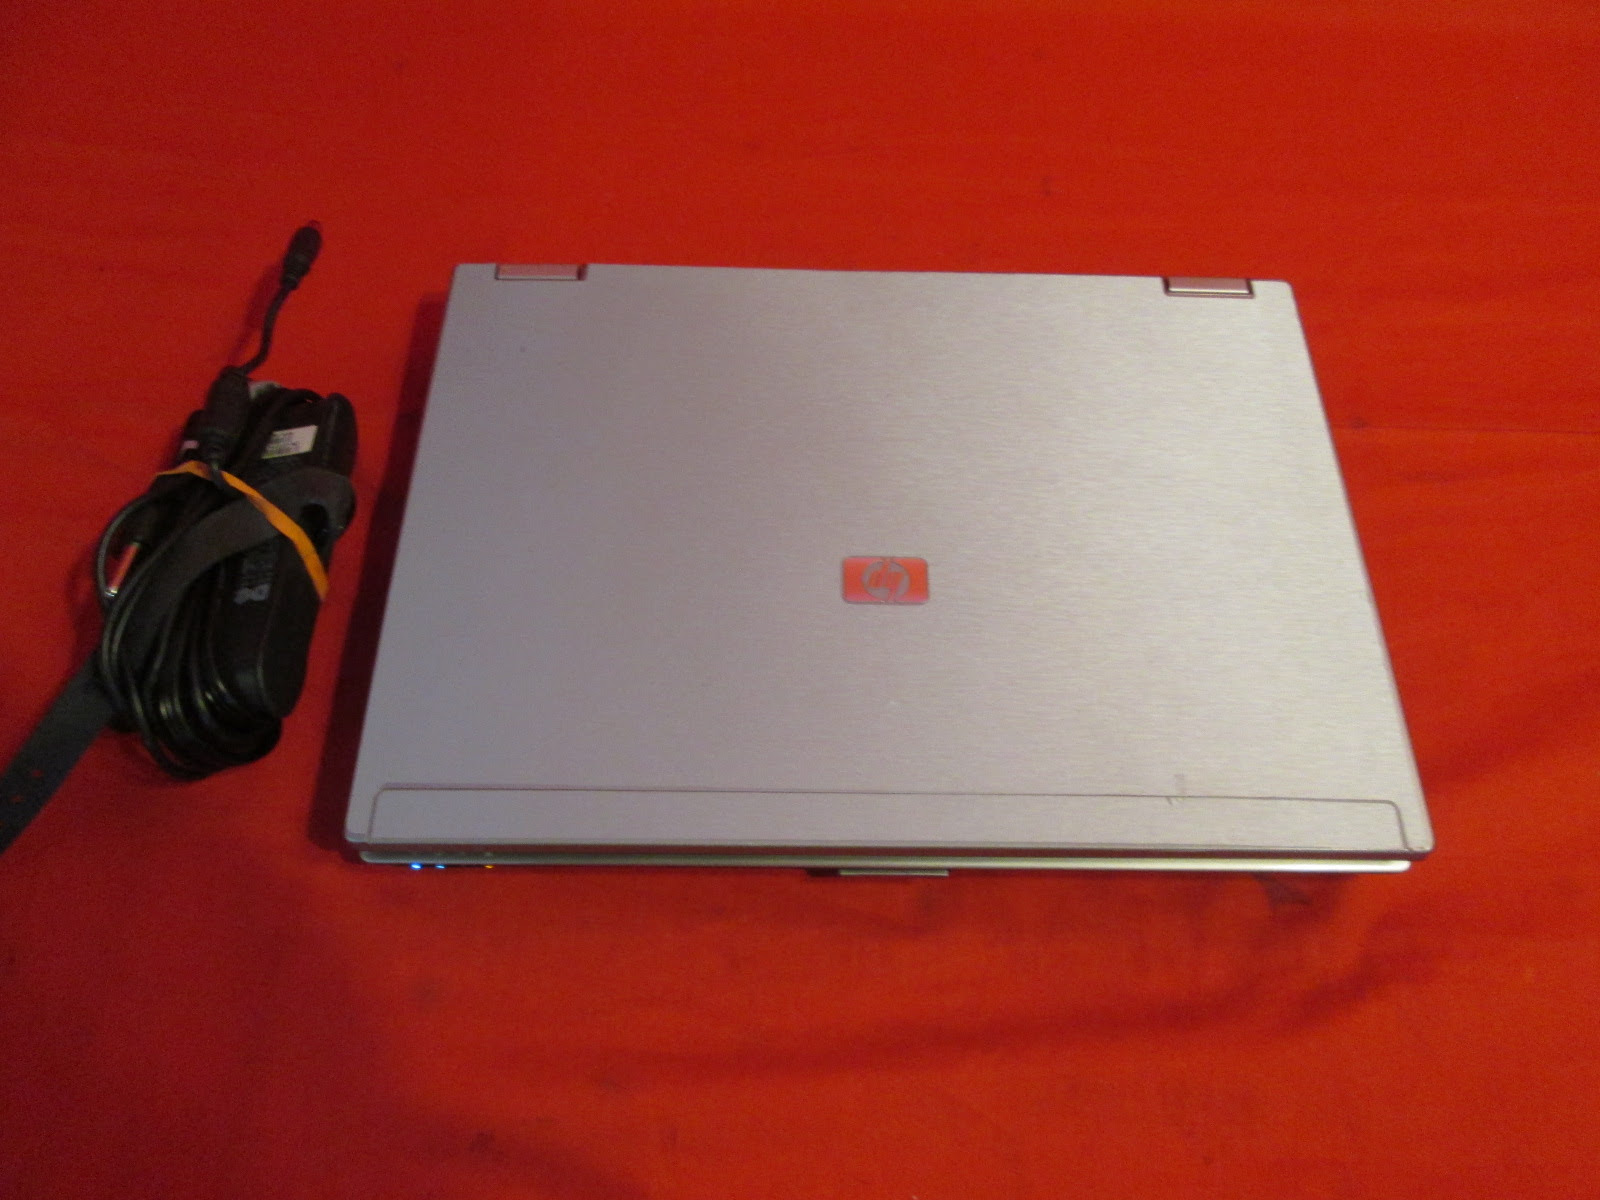 ... manual elitebook 6930p PC FN042UT Elitebook HP 6930P Win P8400 Ram  Notebook 7 4GB ...